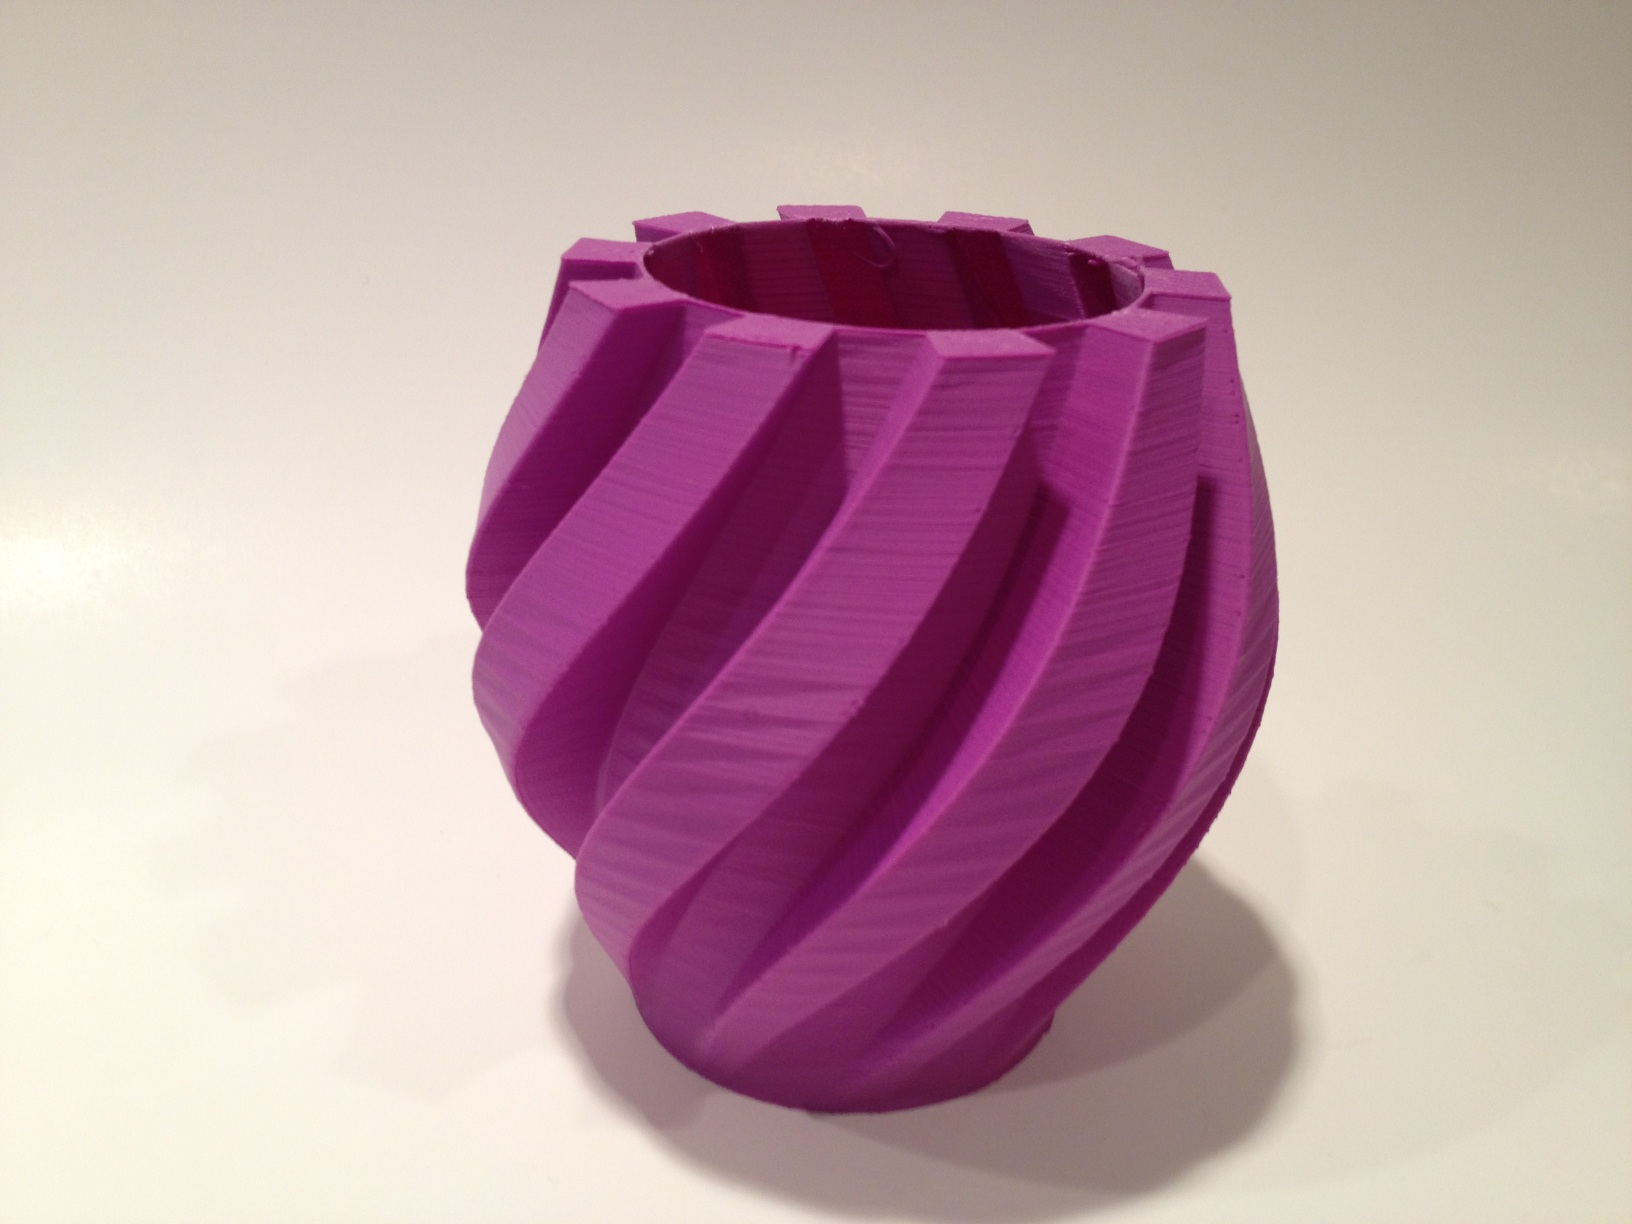 3D Printed Twisted Gear Vase with Nice Finish